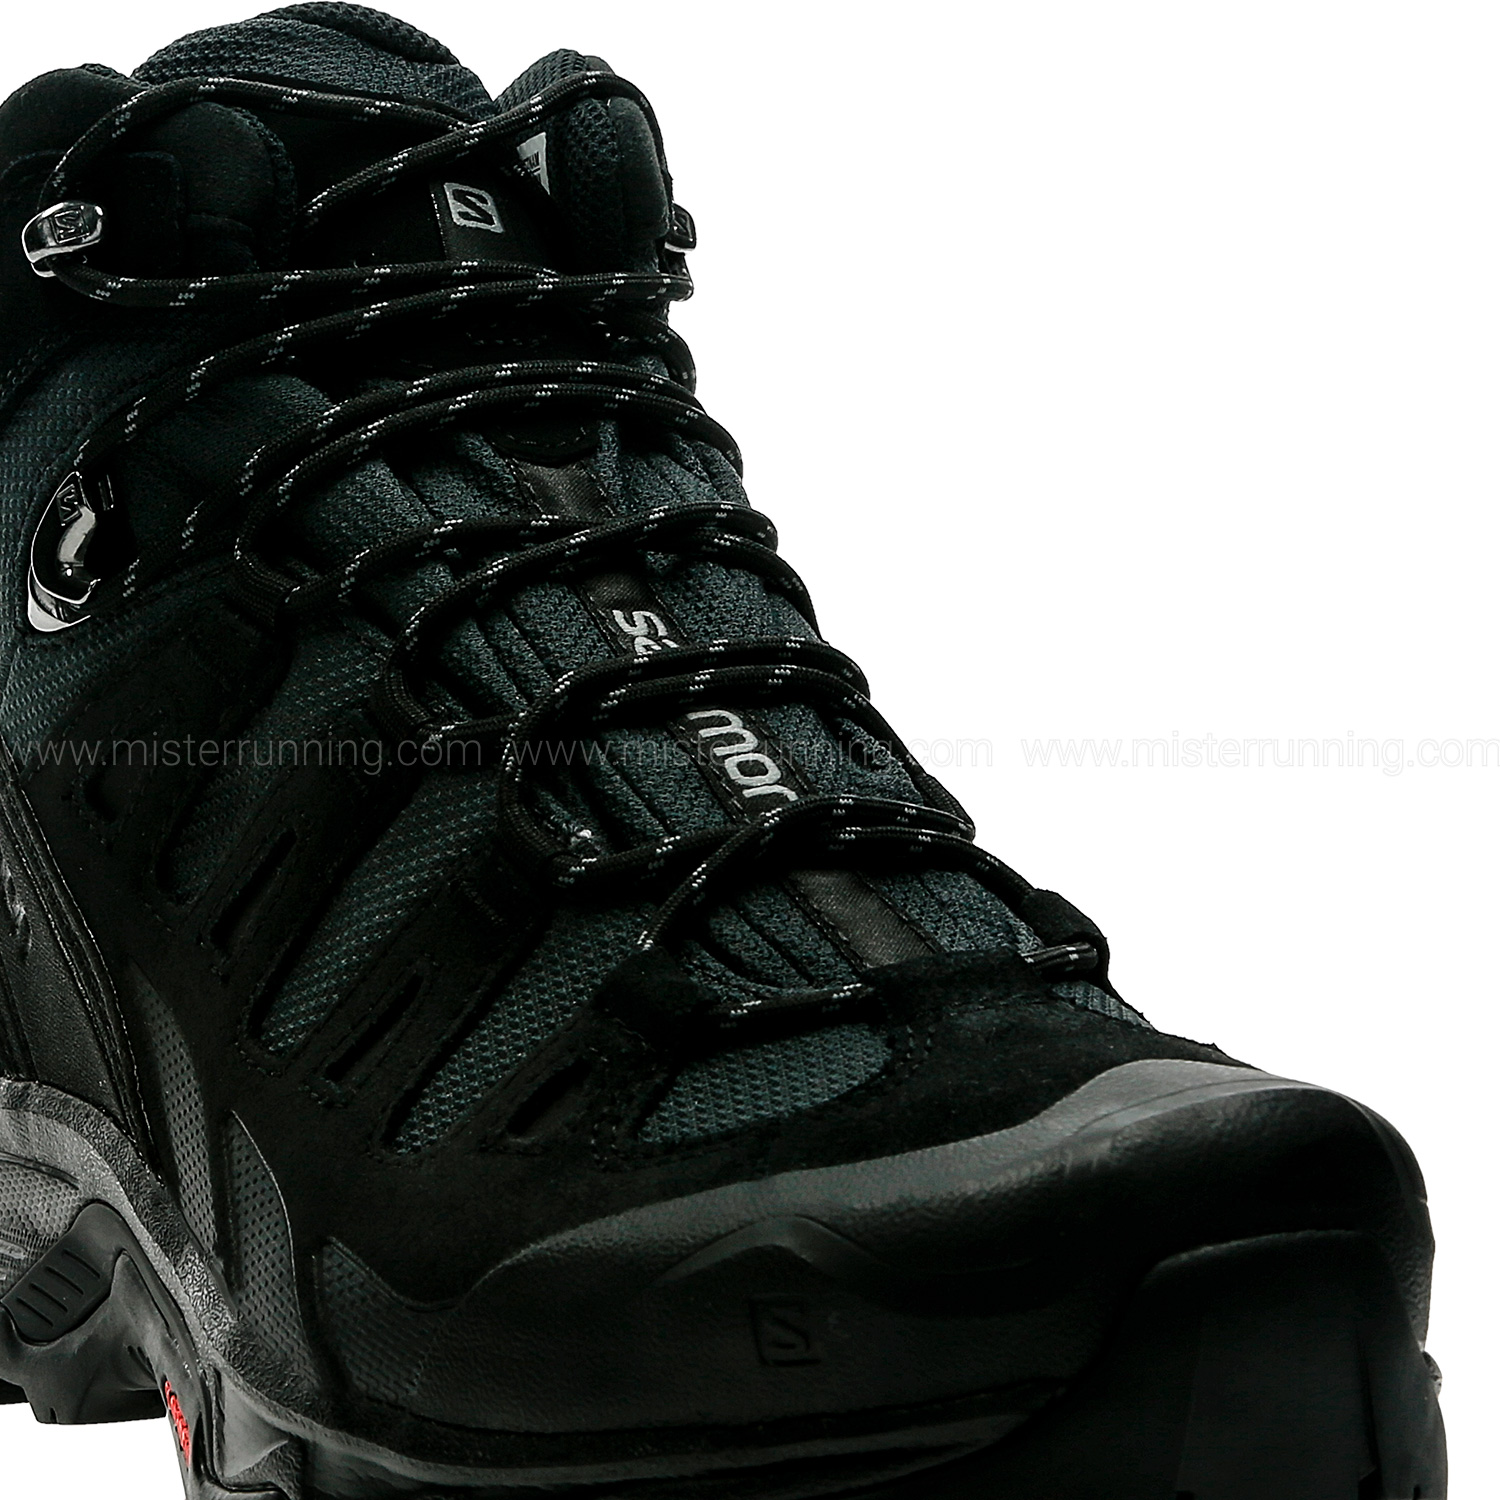 new arrivals b9965 2be09 Salomon-Quest-Prime-GTX-Scarpe-Trekking-Uomo-Black-L40463700 C.jpg